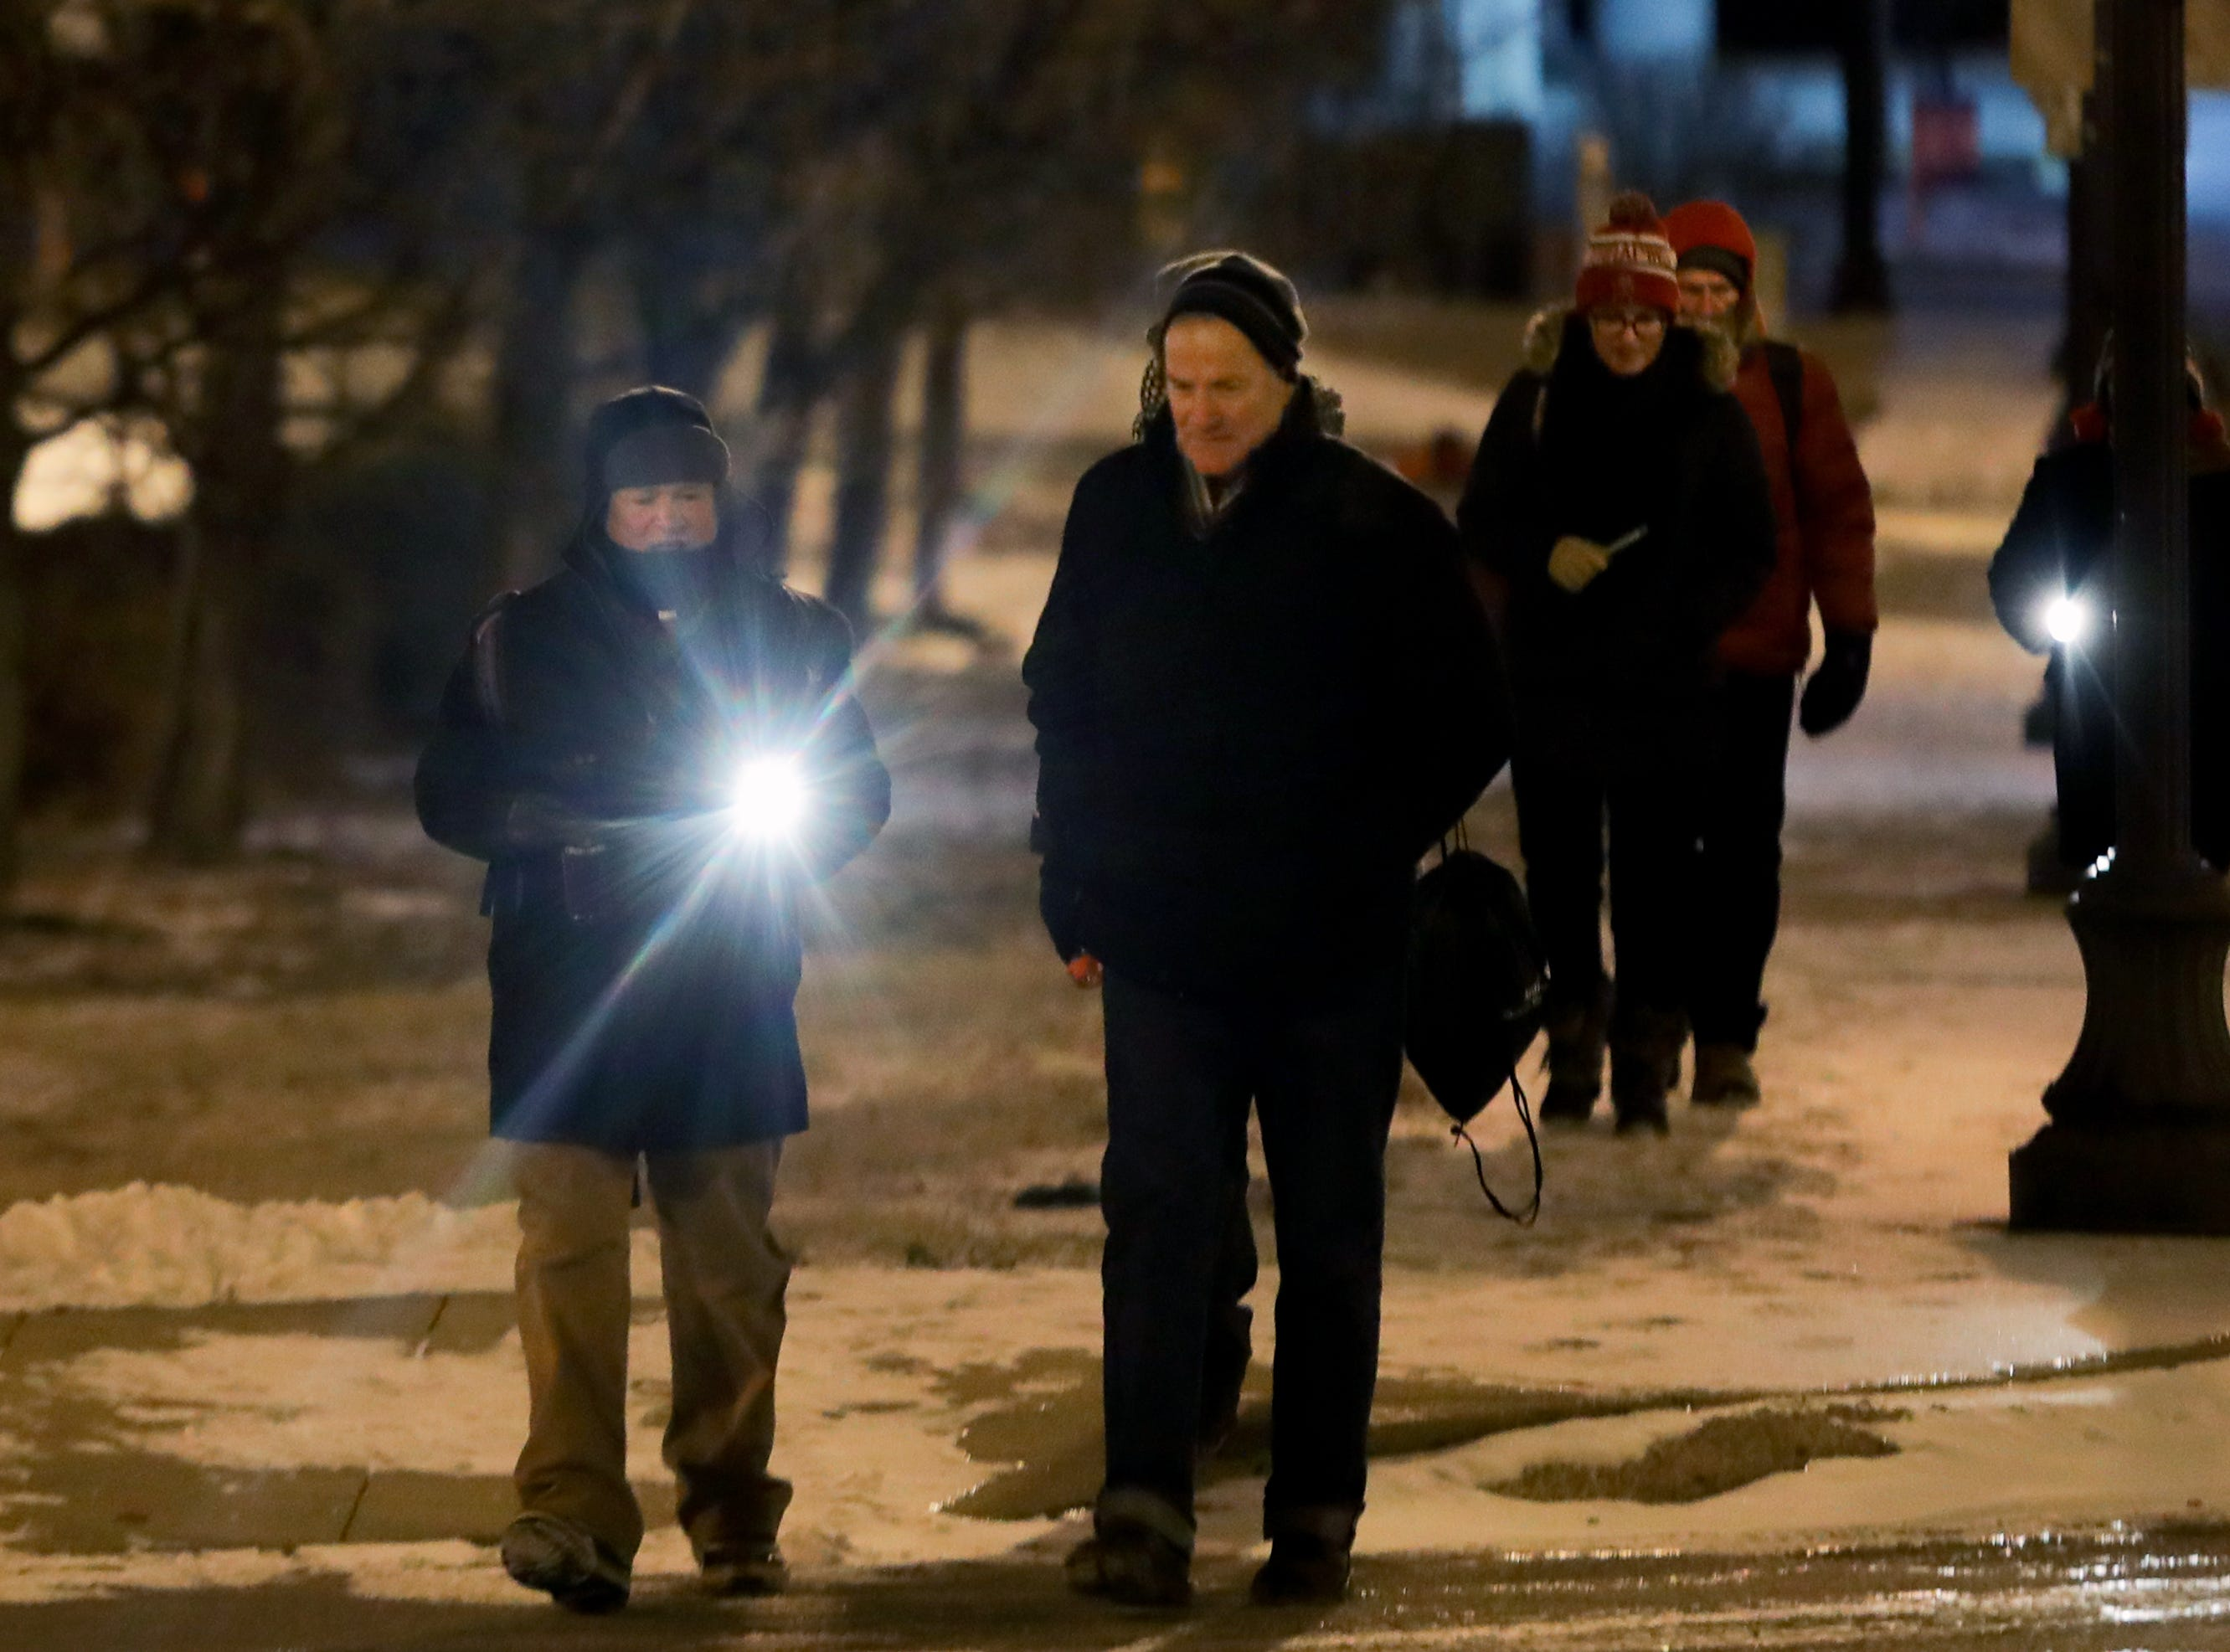 Volunteers braved the extreme cold at 4 a.m. to search different sections of Louisville for the annual homeless count. Jan. 31, 2019